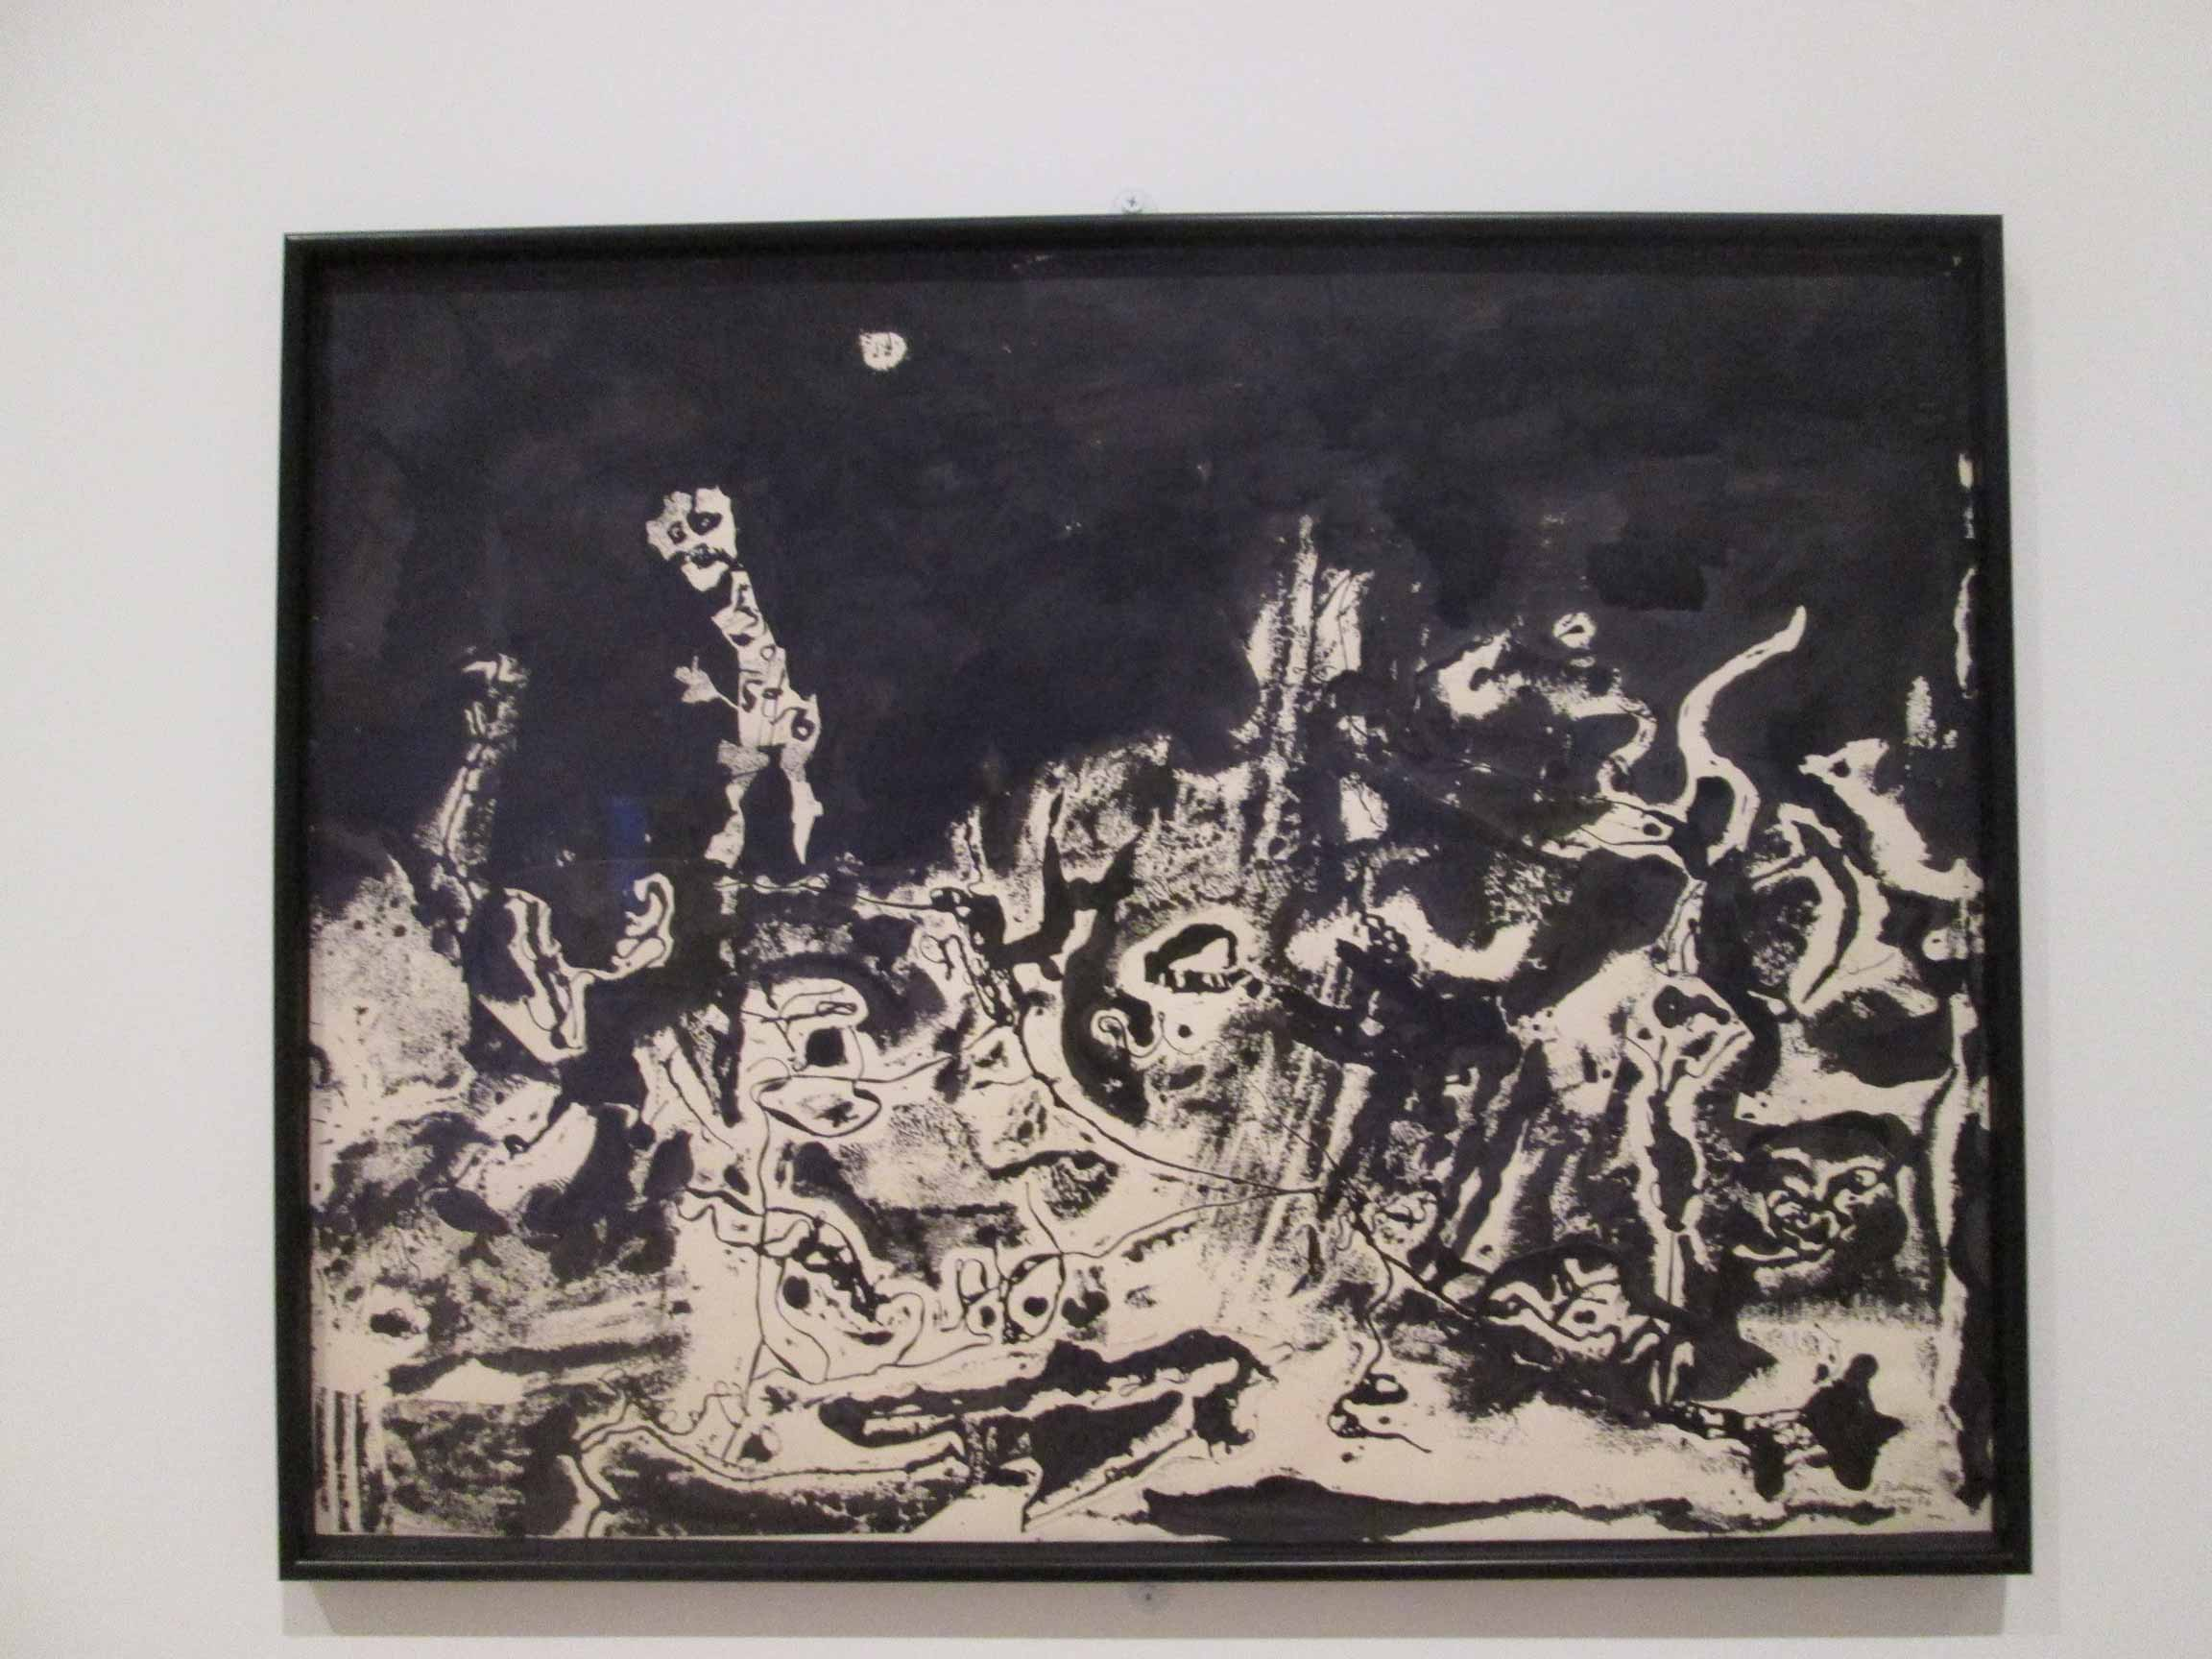 Jean-Dubuffet,-Le-pays-hanté-(The-Haunted-Country),-print-assemblage-and-india-ink,-1954